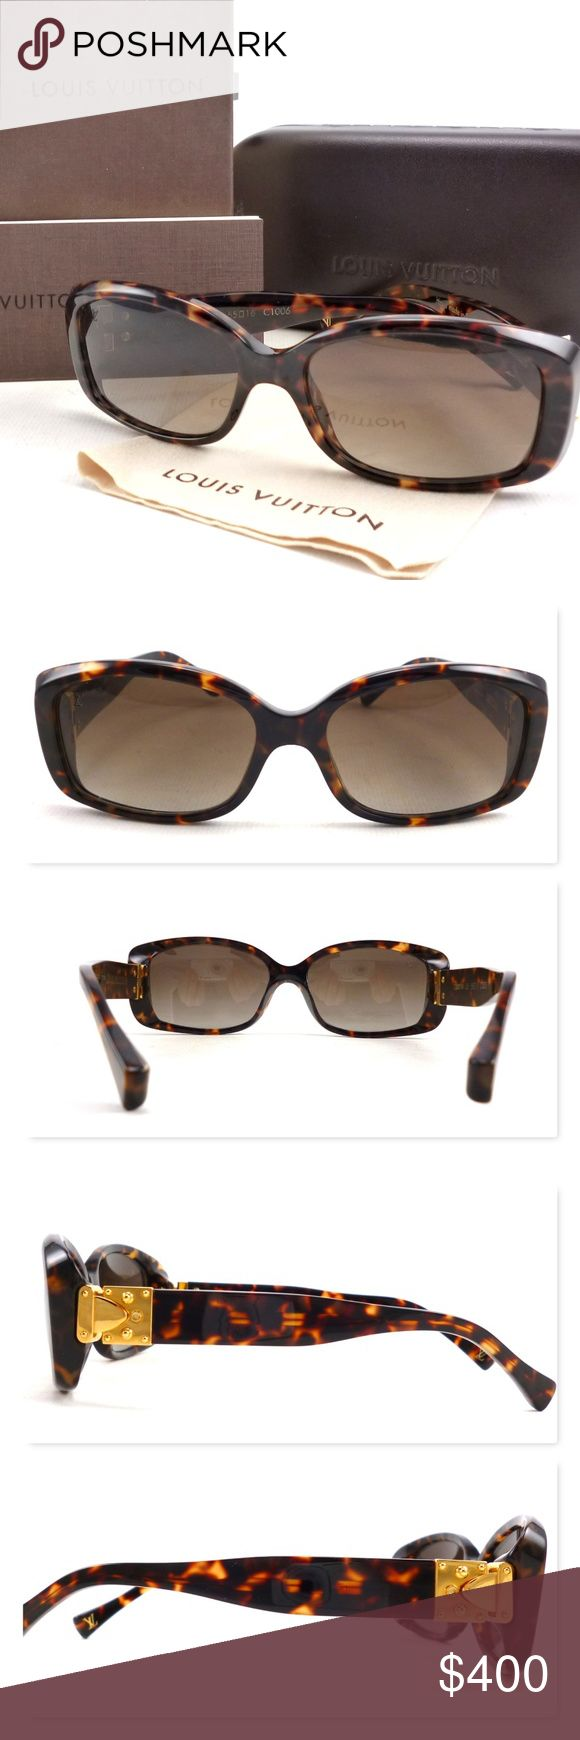 Louis Vuitton Auth Soupcon Women's Sunglasses New Authentic Louis Vuitton Soupcon Tortoise Shell Frame Women's Sunglasses. New floor model condition comes with LV box, case, cleaning cloth & care booklet. Features S-Lock hinges and tortoise shell acetate frames. Size 55-16. Hand made in Italy. Feel free to ask any questions. Sorry, no trades. 103629 Louis Vuitton Accessories Sunglasses